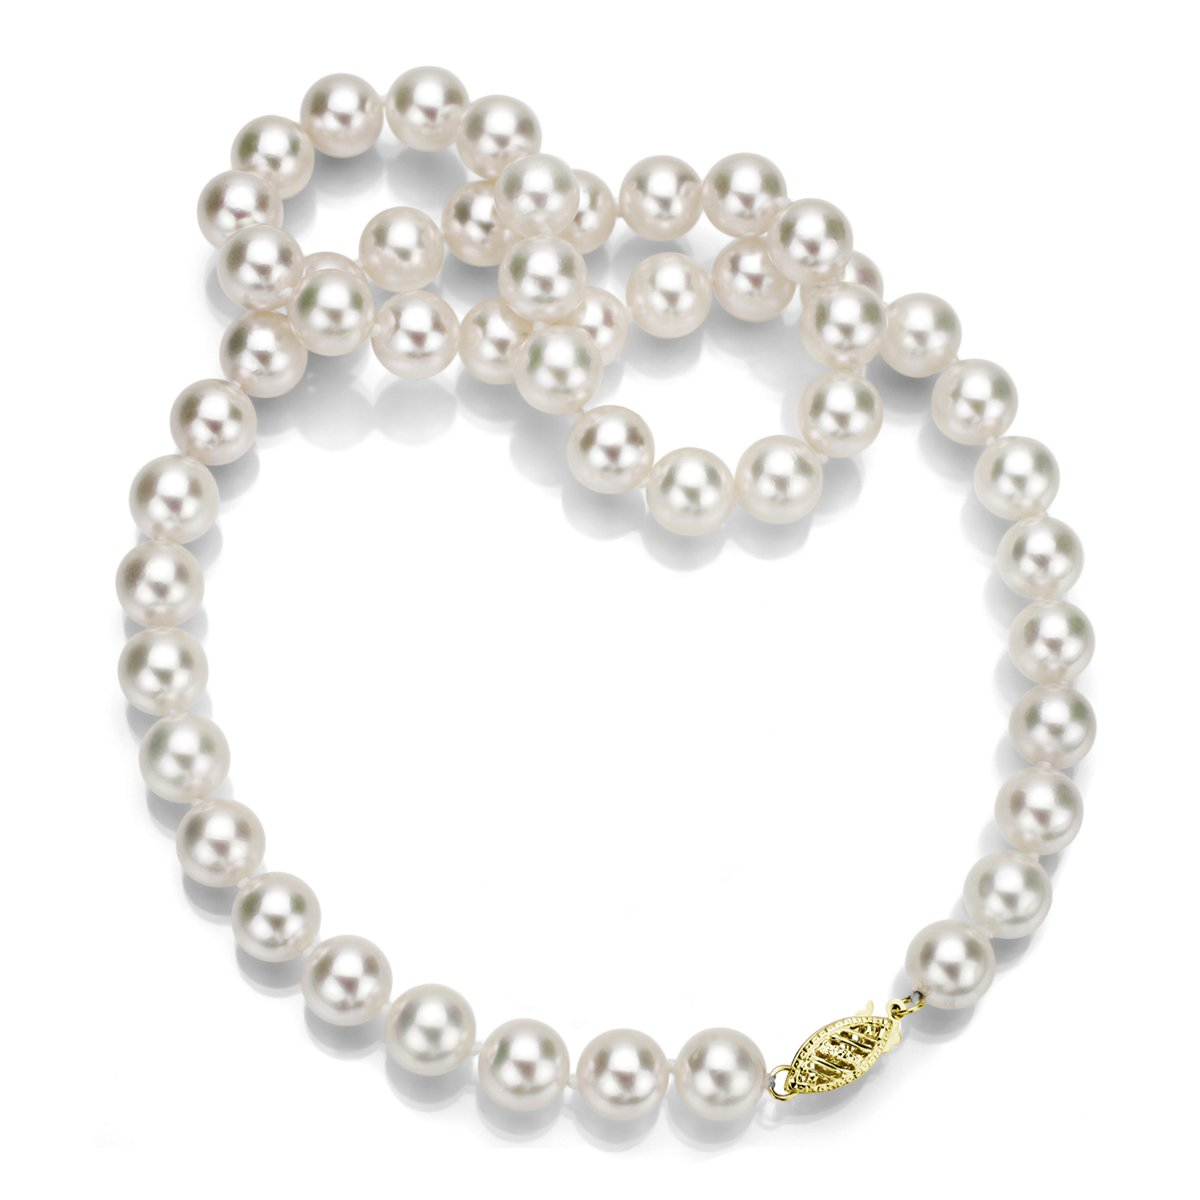 14k Yellow Gold 7.5-8mm AAA Handpicked White Japanese Akoya Cultured Pearl Necklace, 24''